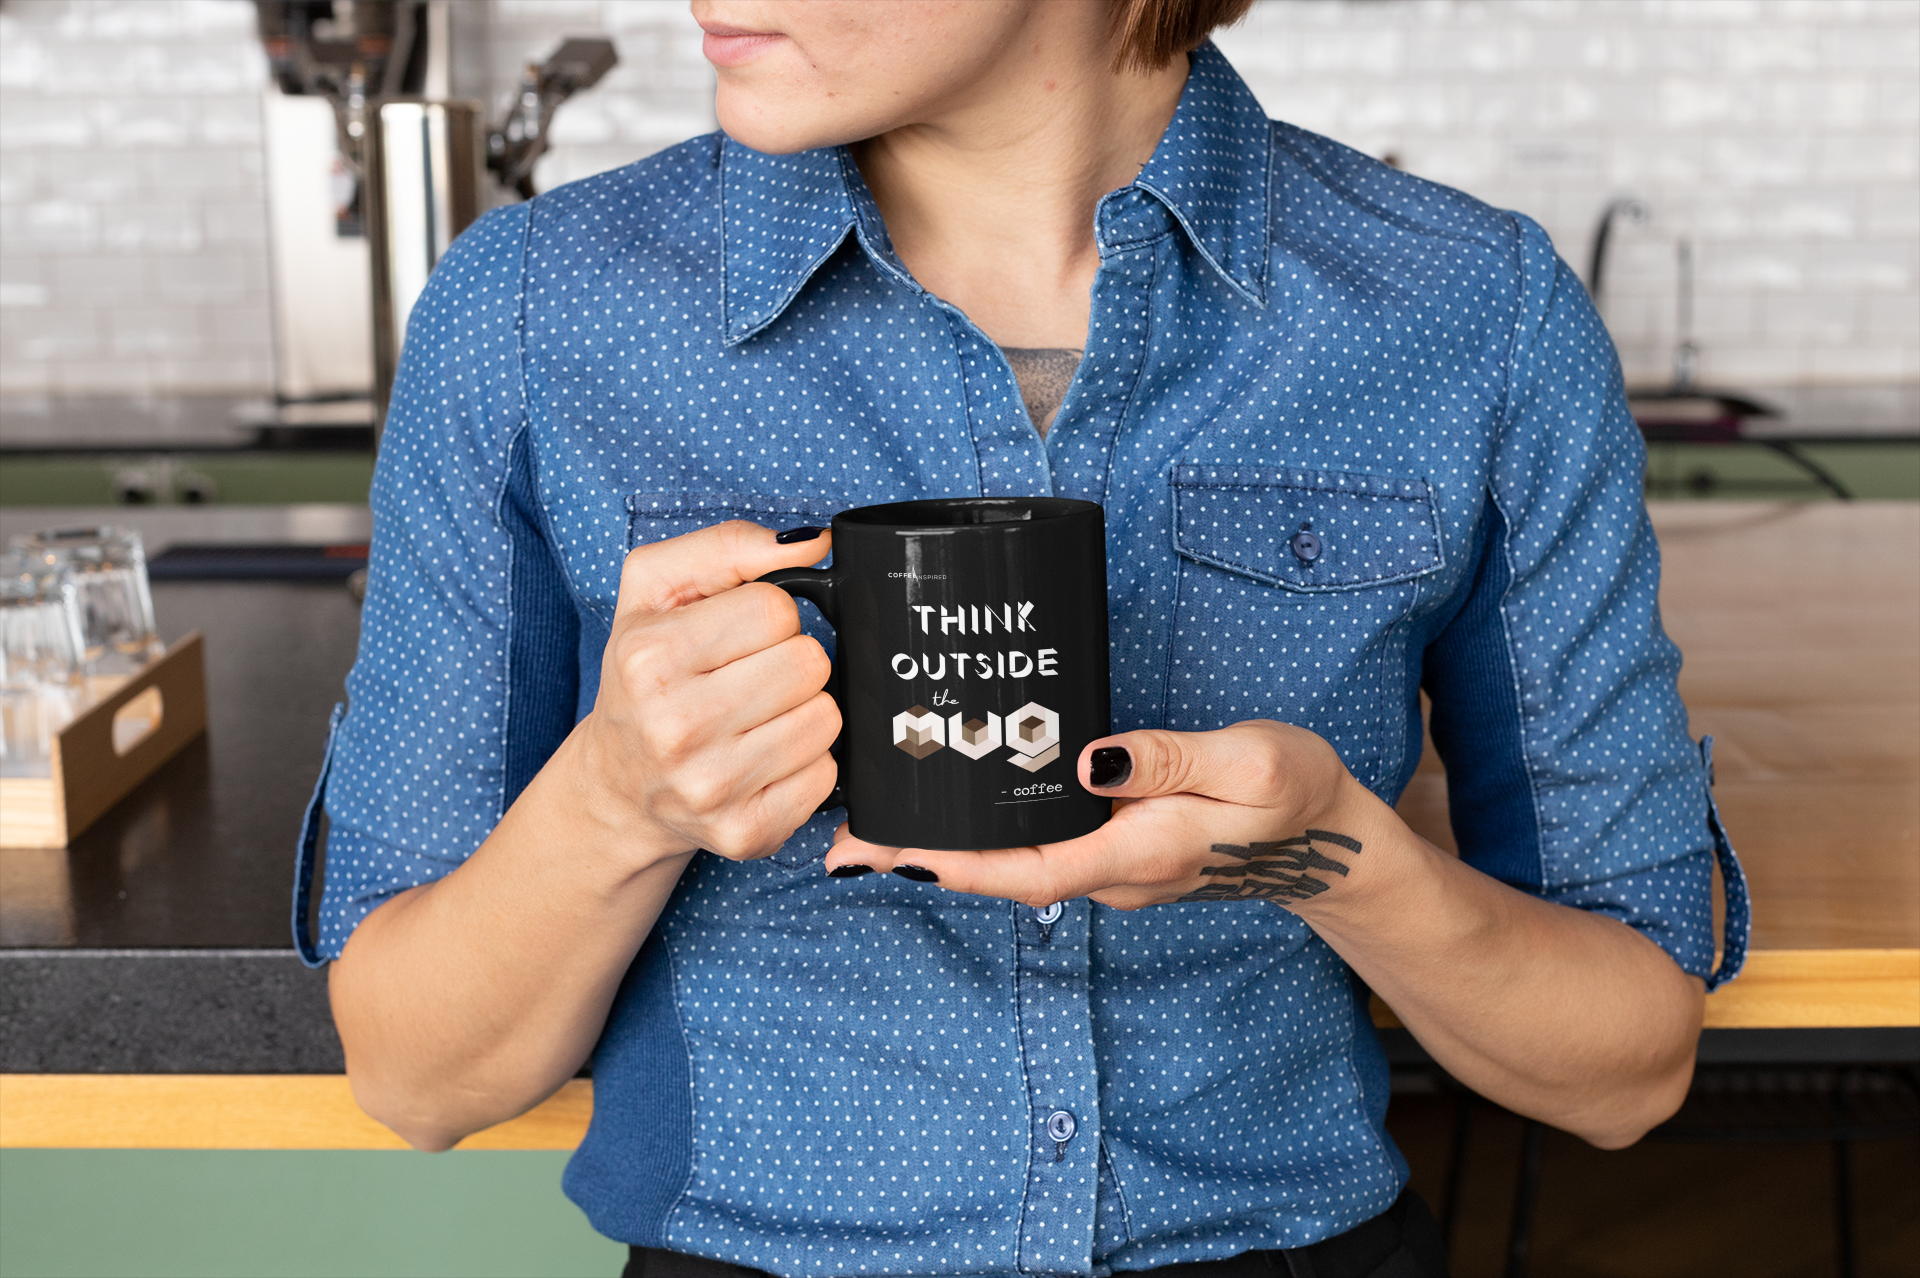 MUG - Think Outside The Mug